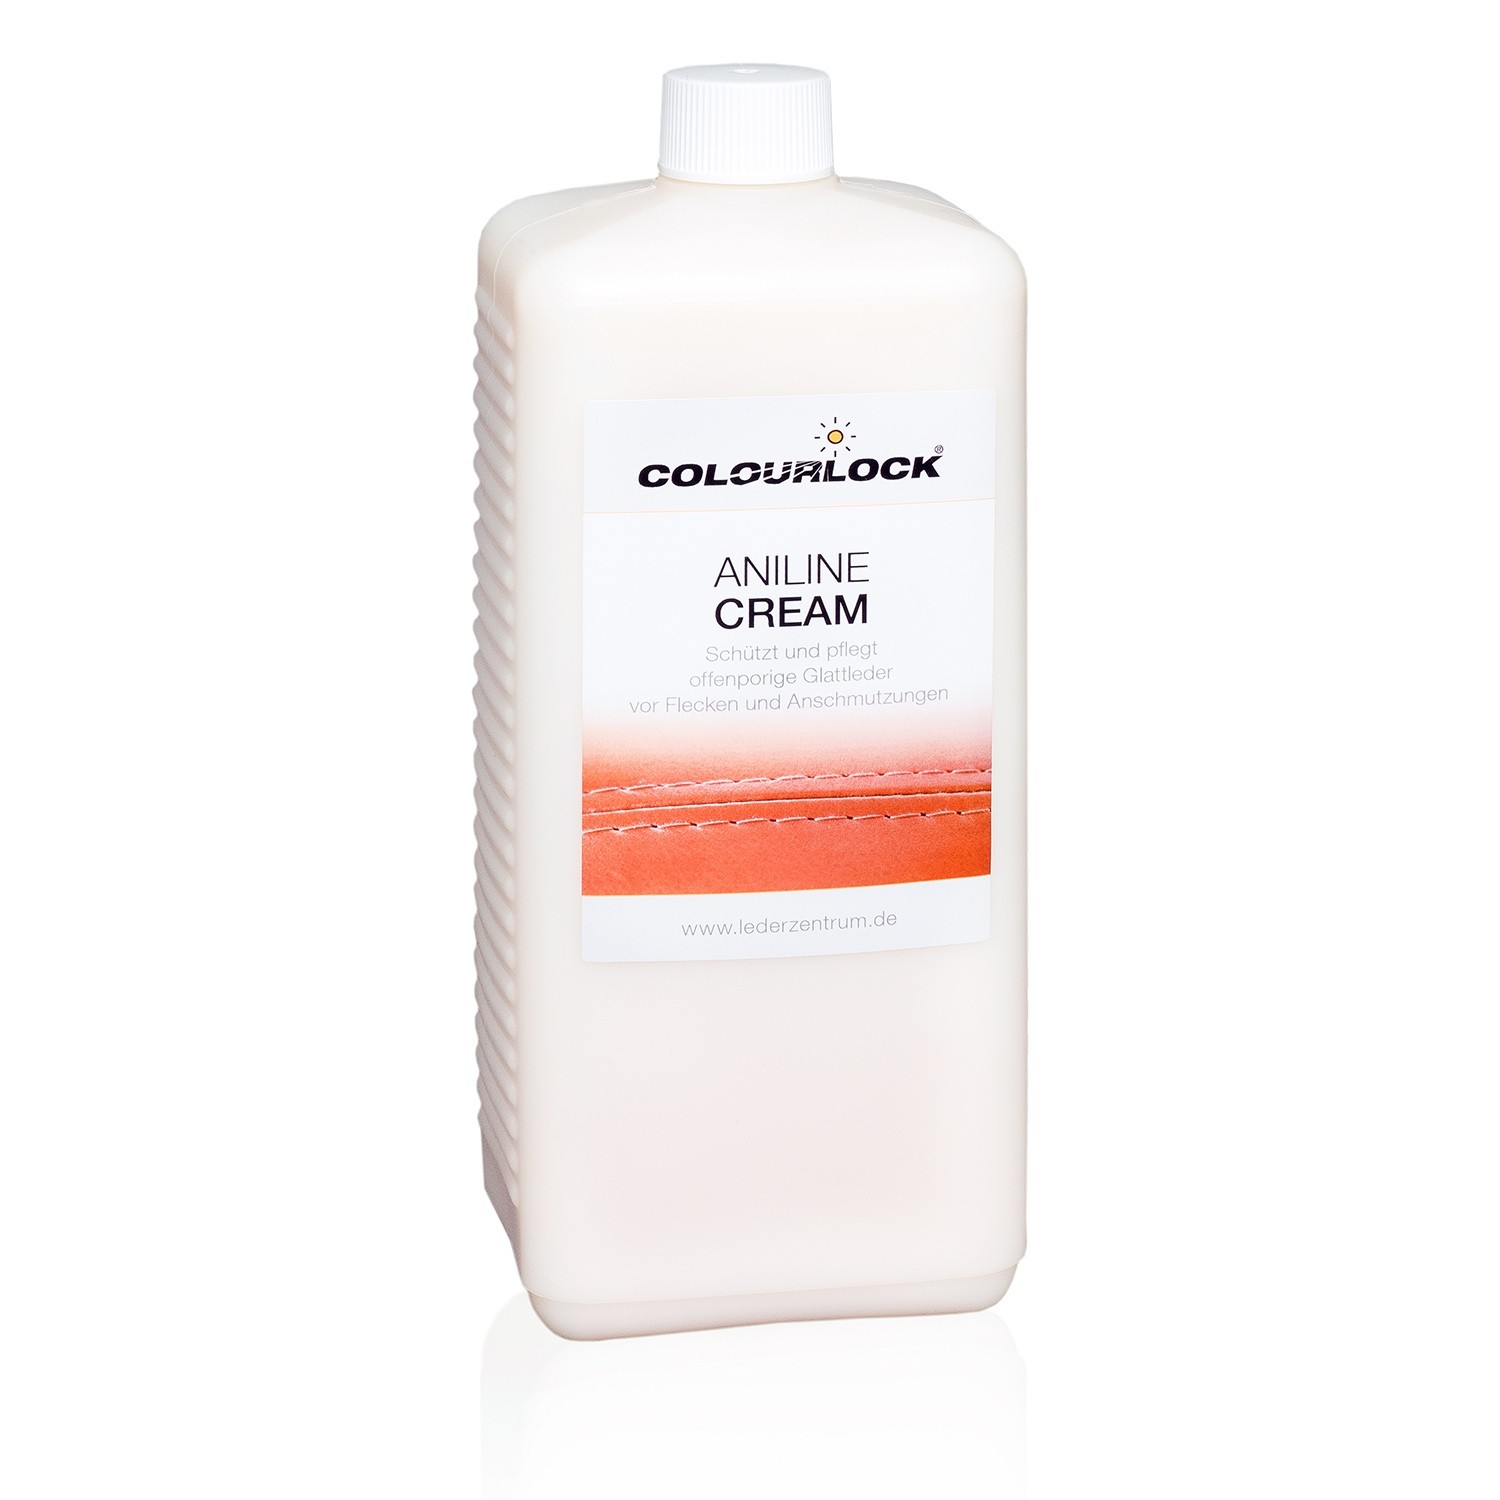 COLOURLOCK Aniline Cream, 1 Liter